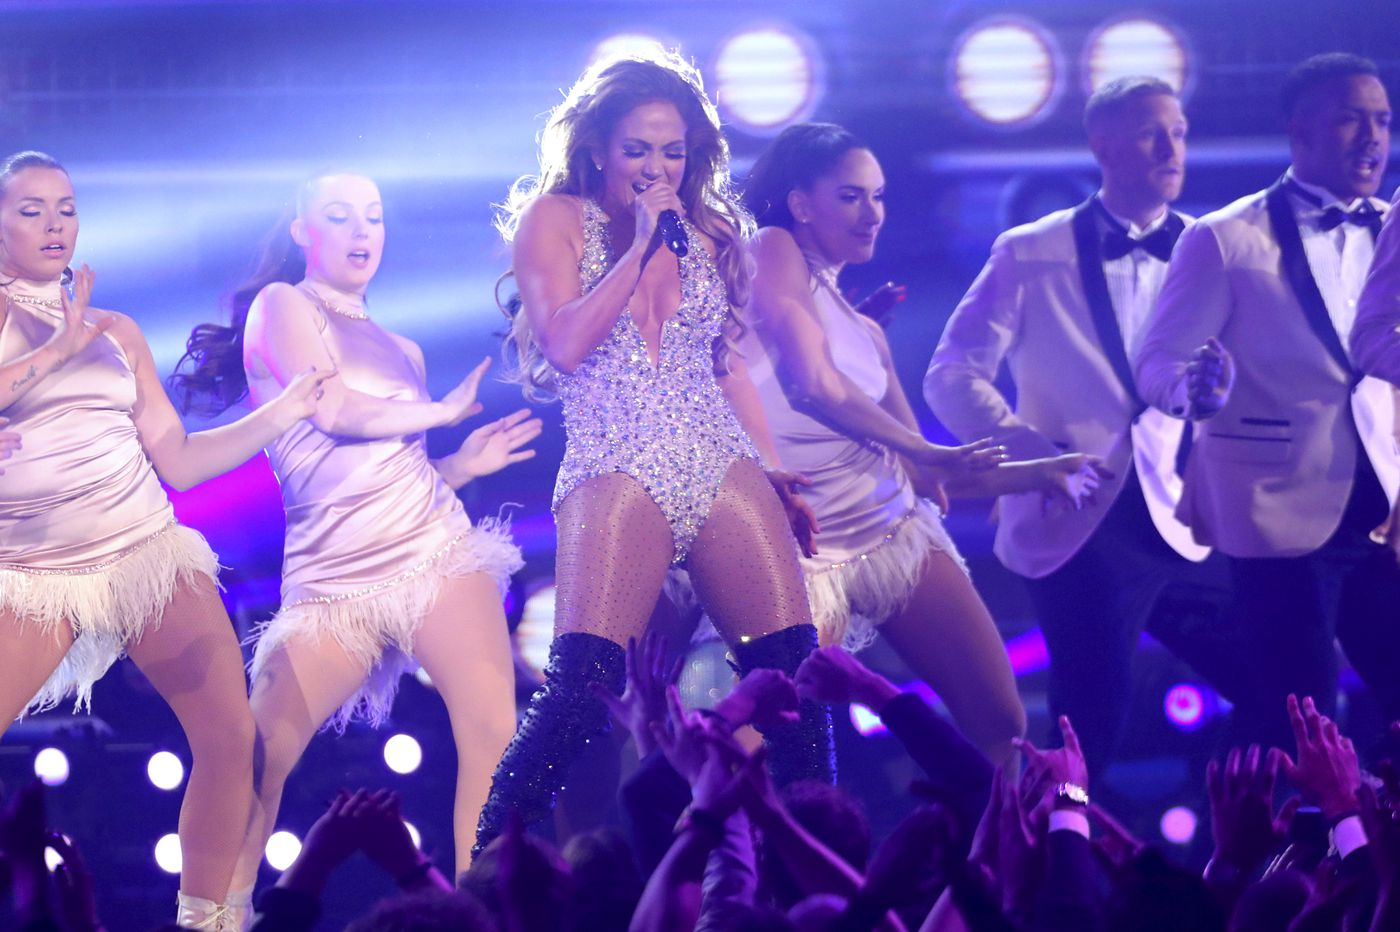 Jennifer Lopez's Motown tribute on the Grammys: What was that insulting foolishness? | Elizabeth Wellington